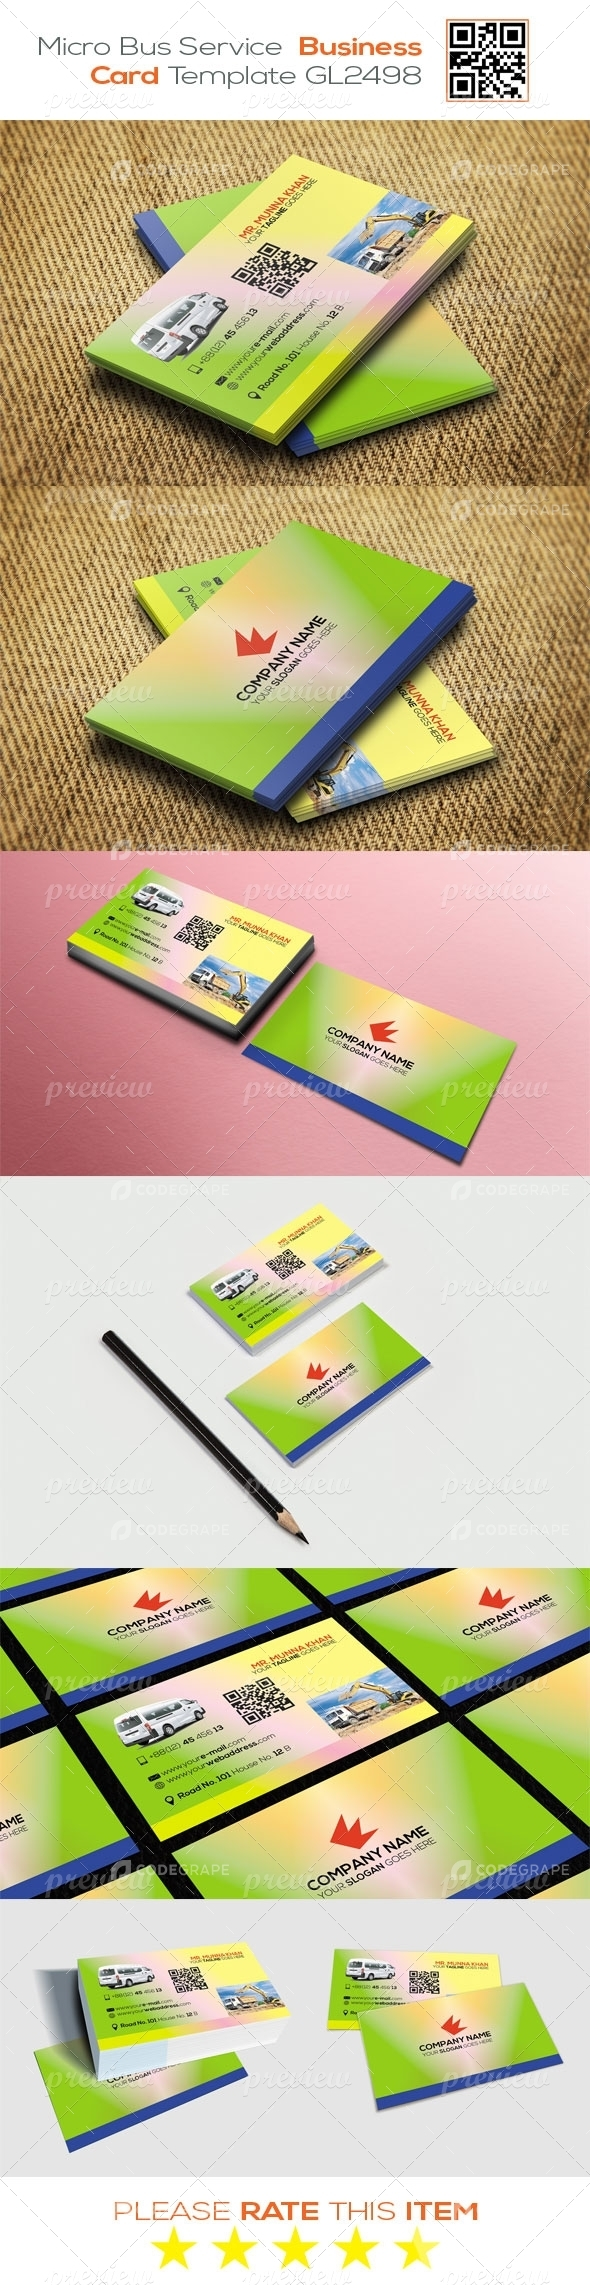 Micro Bus Service Business Card Template GL2498